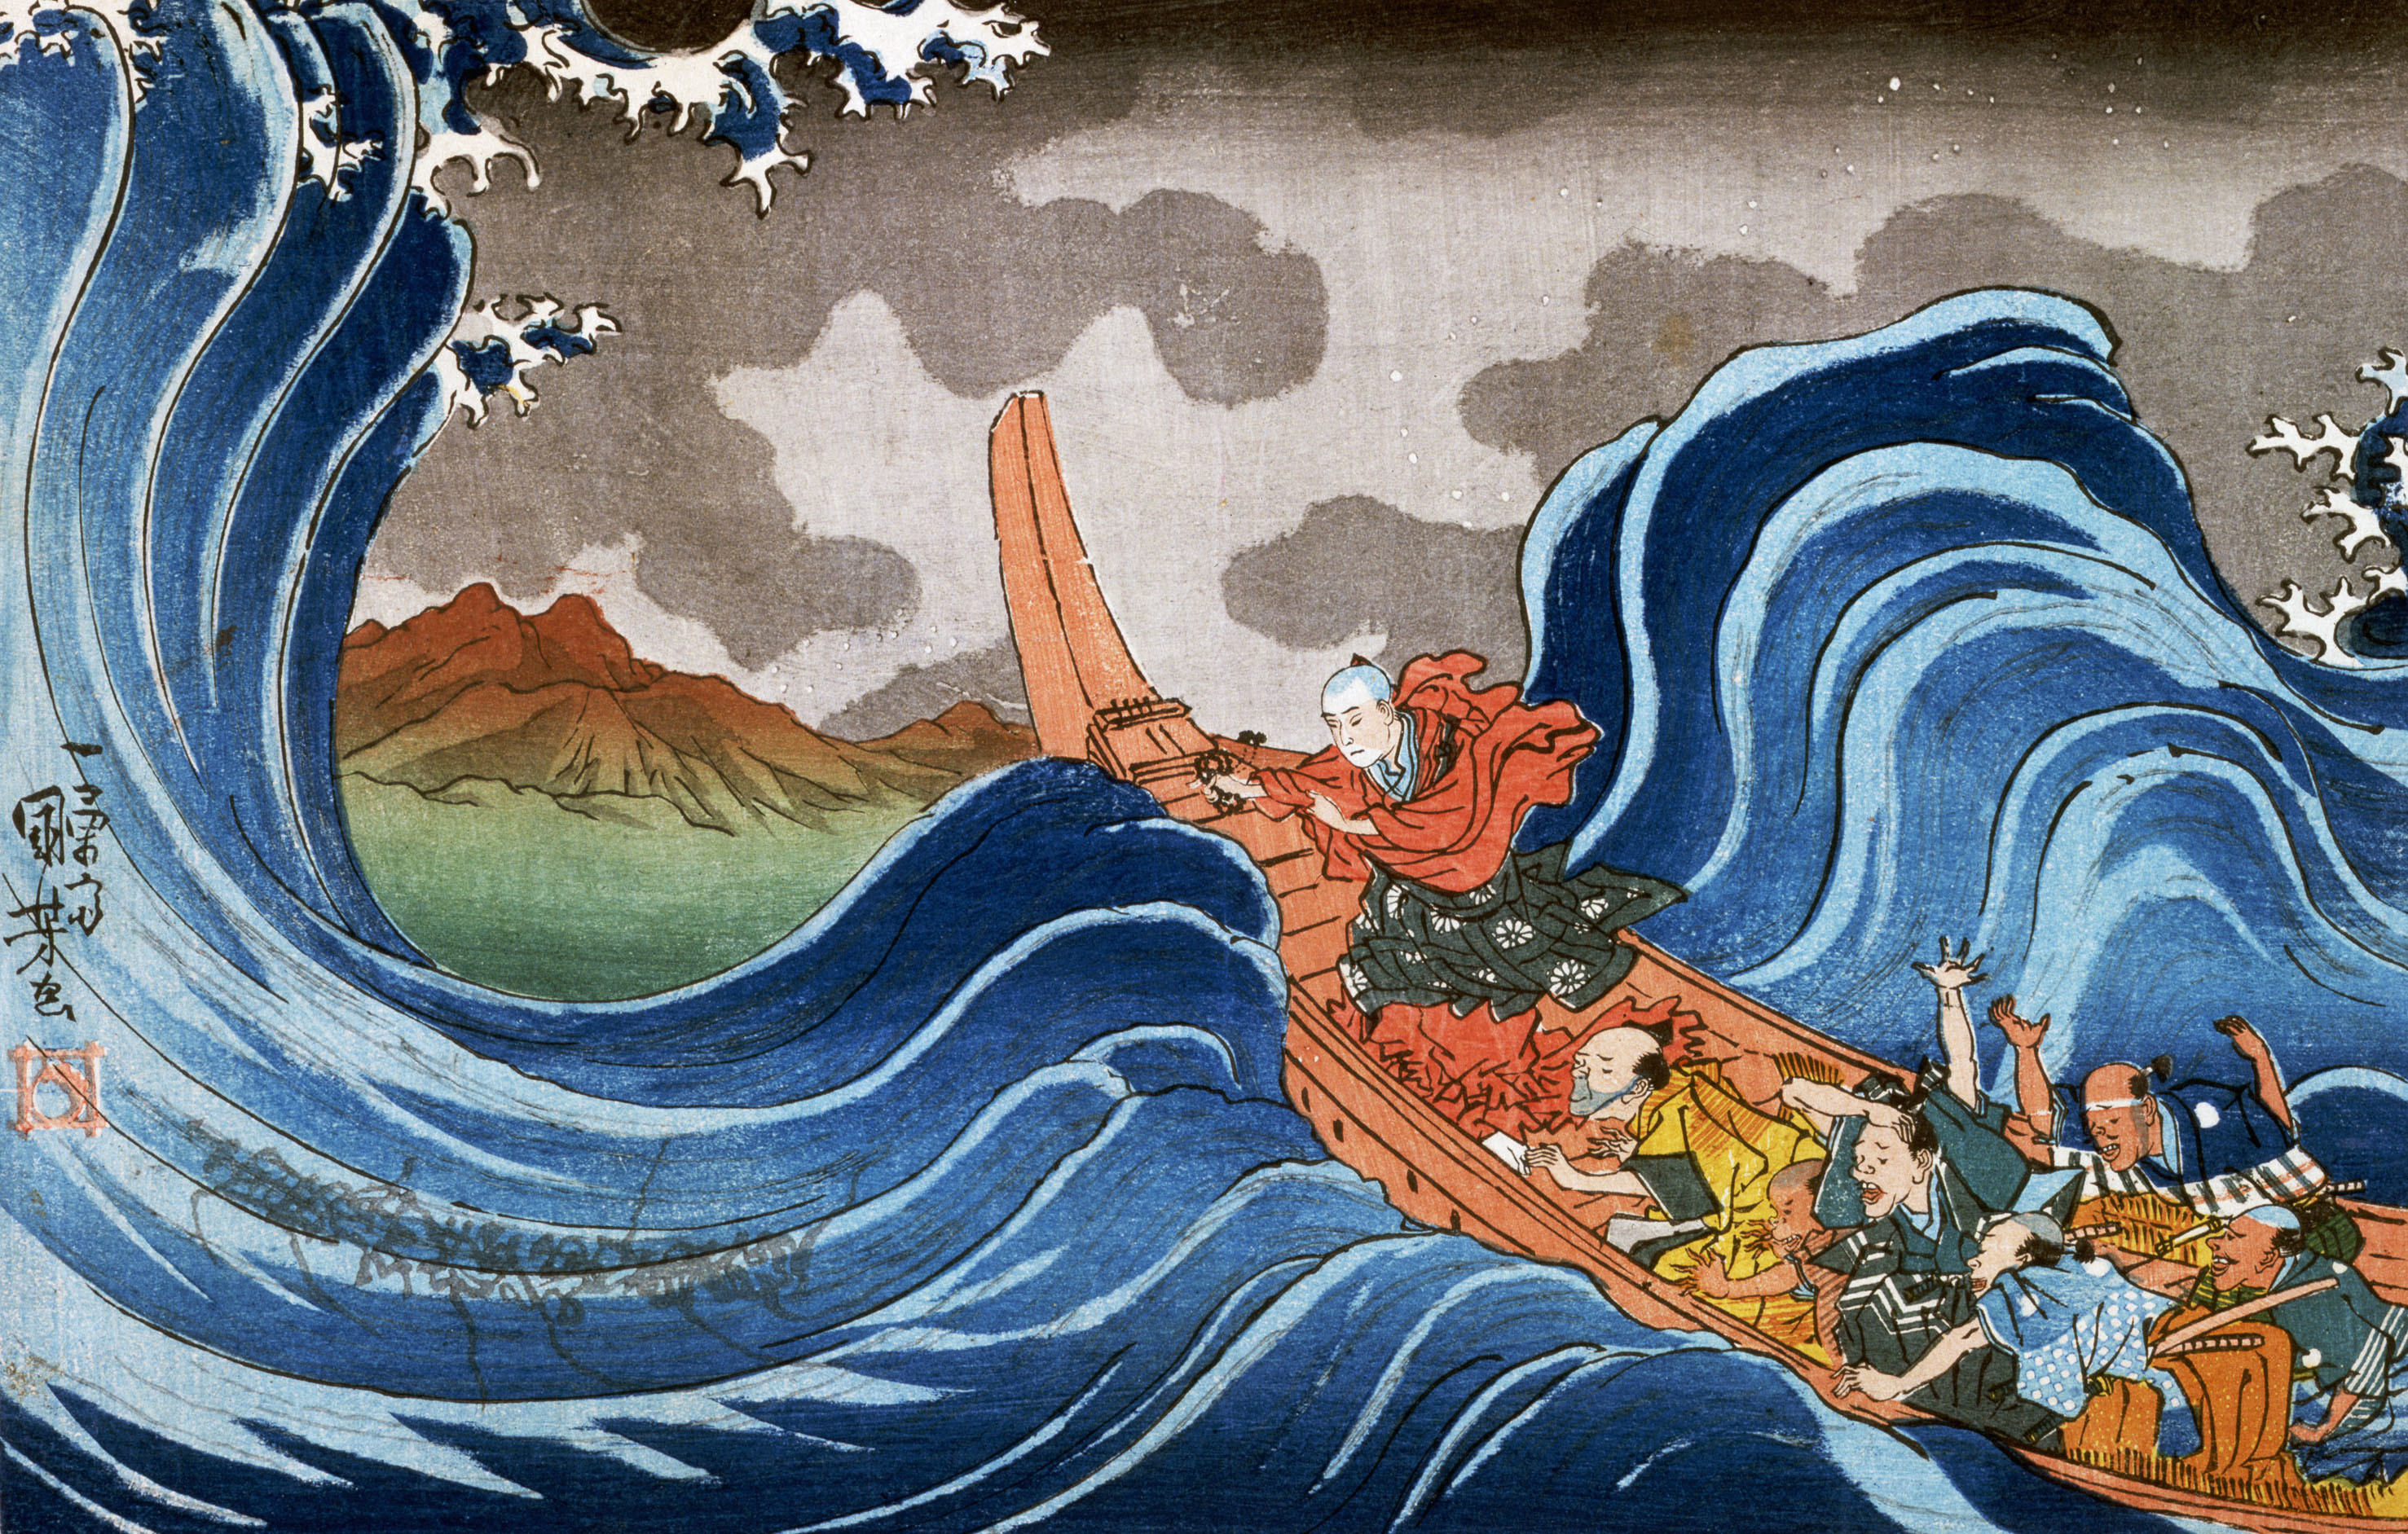 Res: 2955x1883, Artistic - Japanese Wave Monk Wallpaper